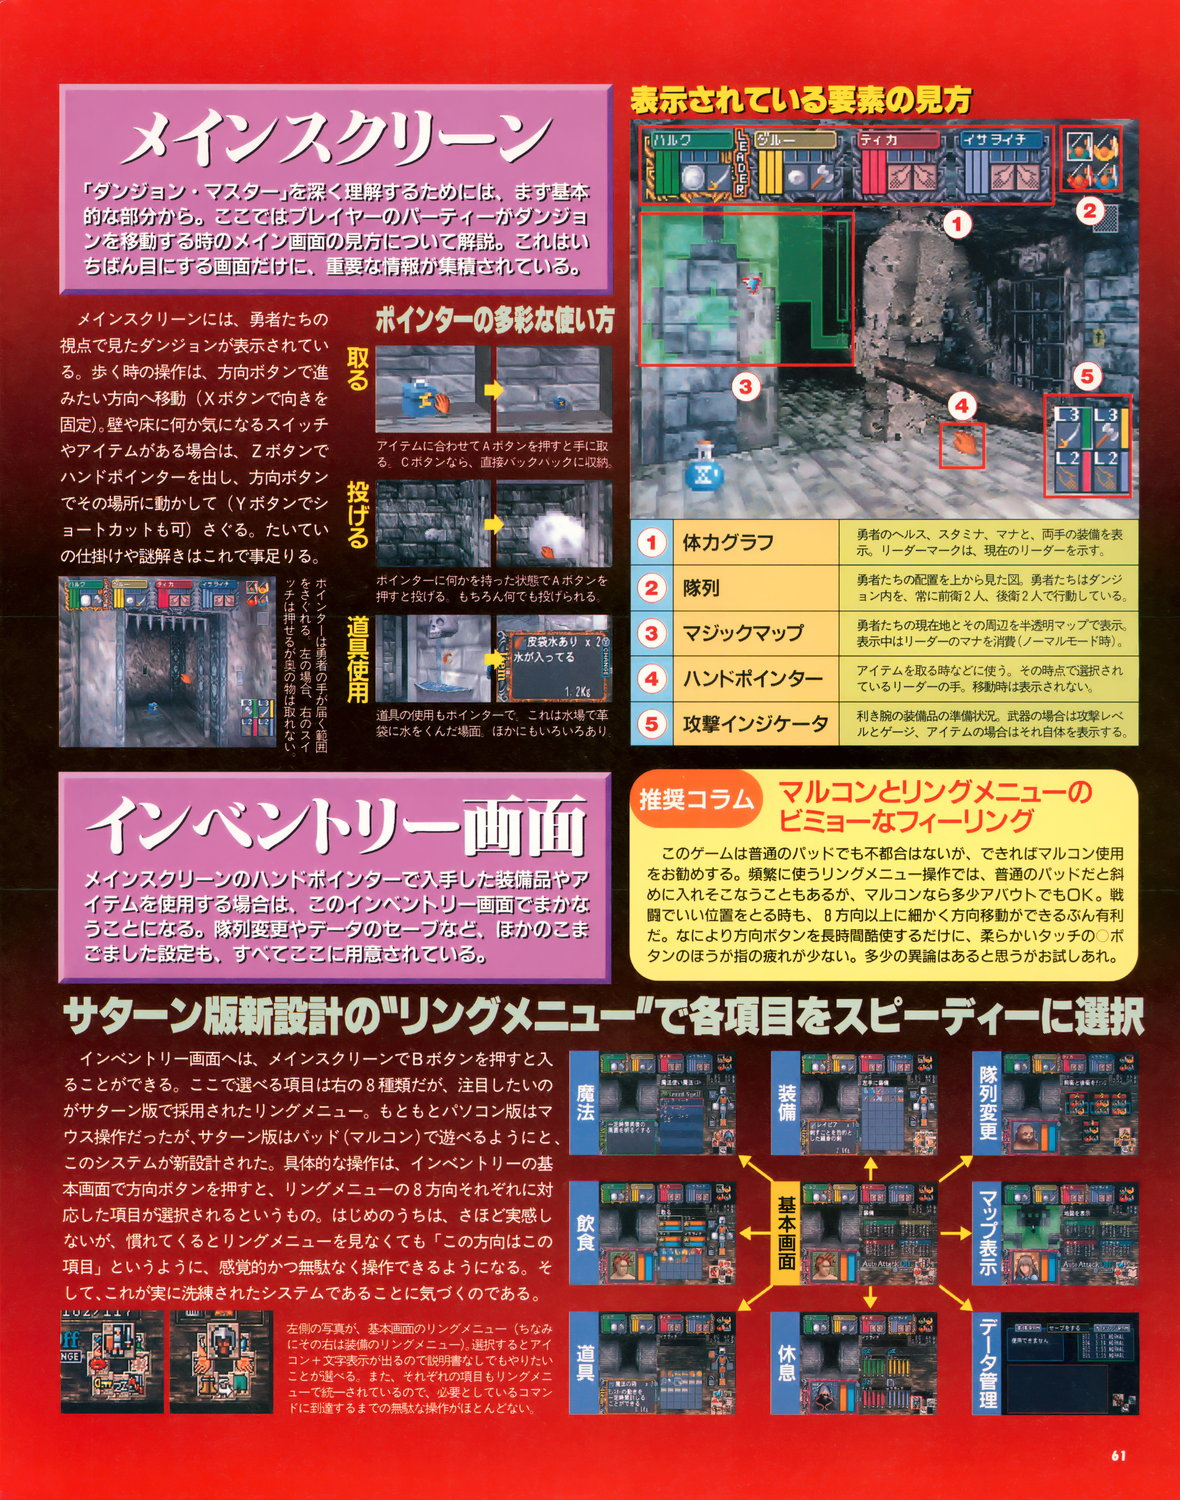 Dungeon Master Nexus Preview published in Japanese magazine 'Sega Saturn Magazine', Vol 7 13 March 1998, Page 61